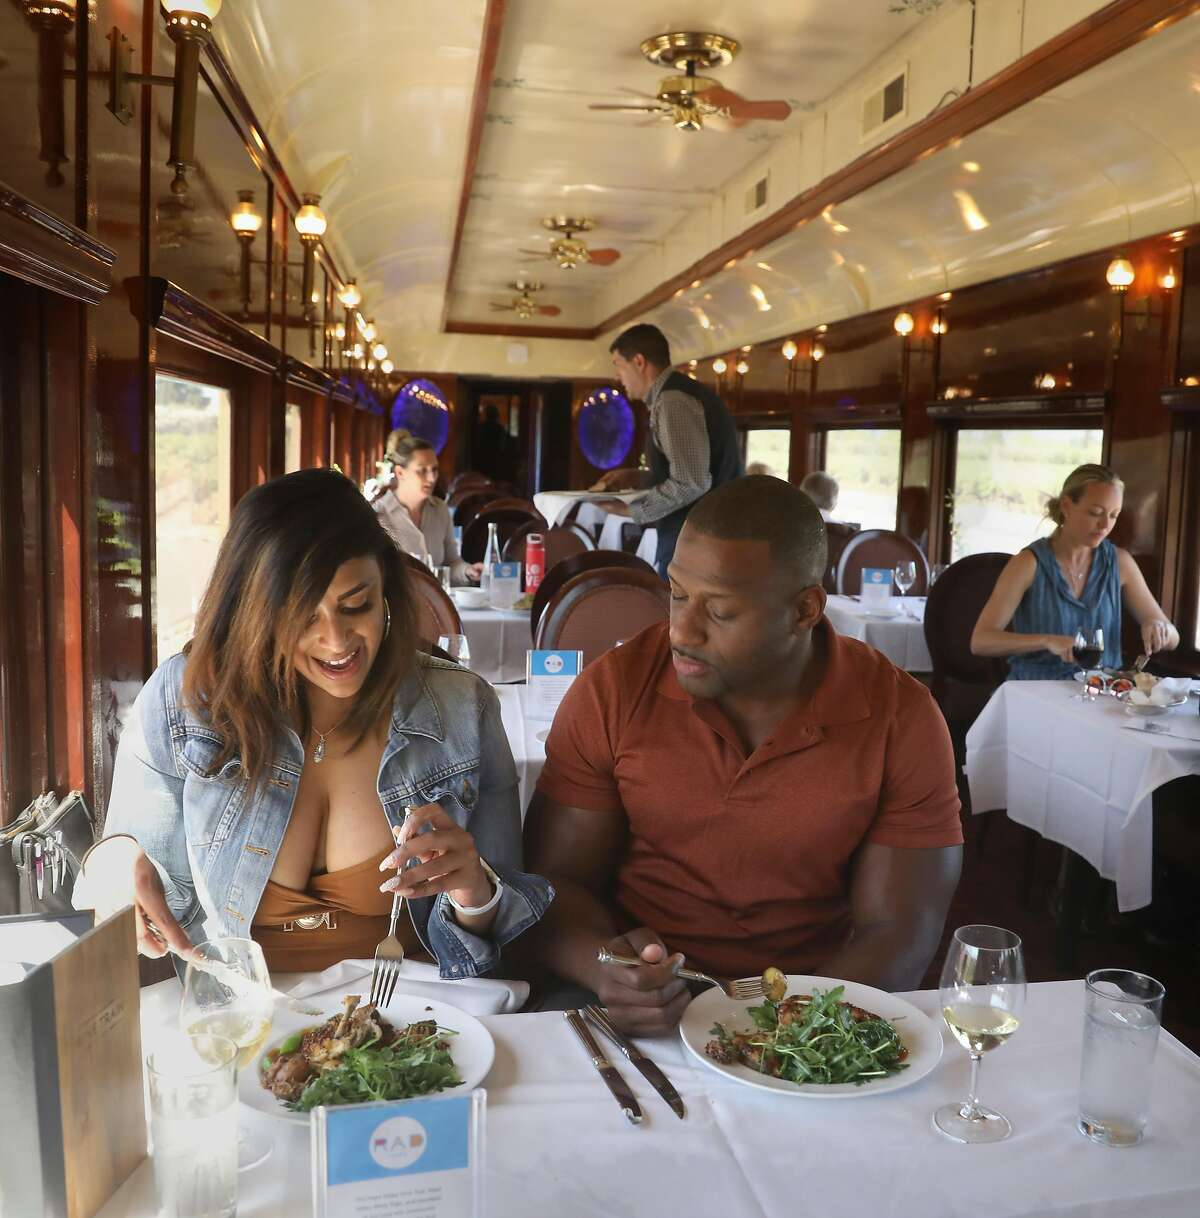 Clarissa Woods (left) from Monterey and Demetric Antonio (middle) from San Diego have lunch on the Napa Valley Wine Train, which is celebrating its 30th anniversary on Sept. 16 seen on Friday, Aug. 30, 2019 in Napa, Calif.